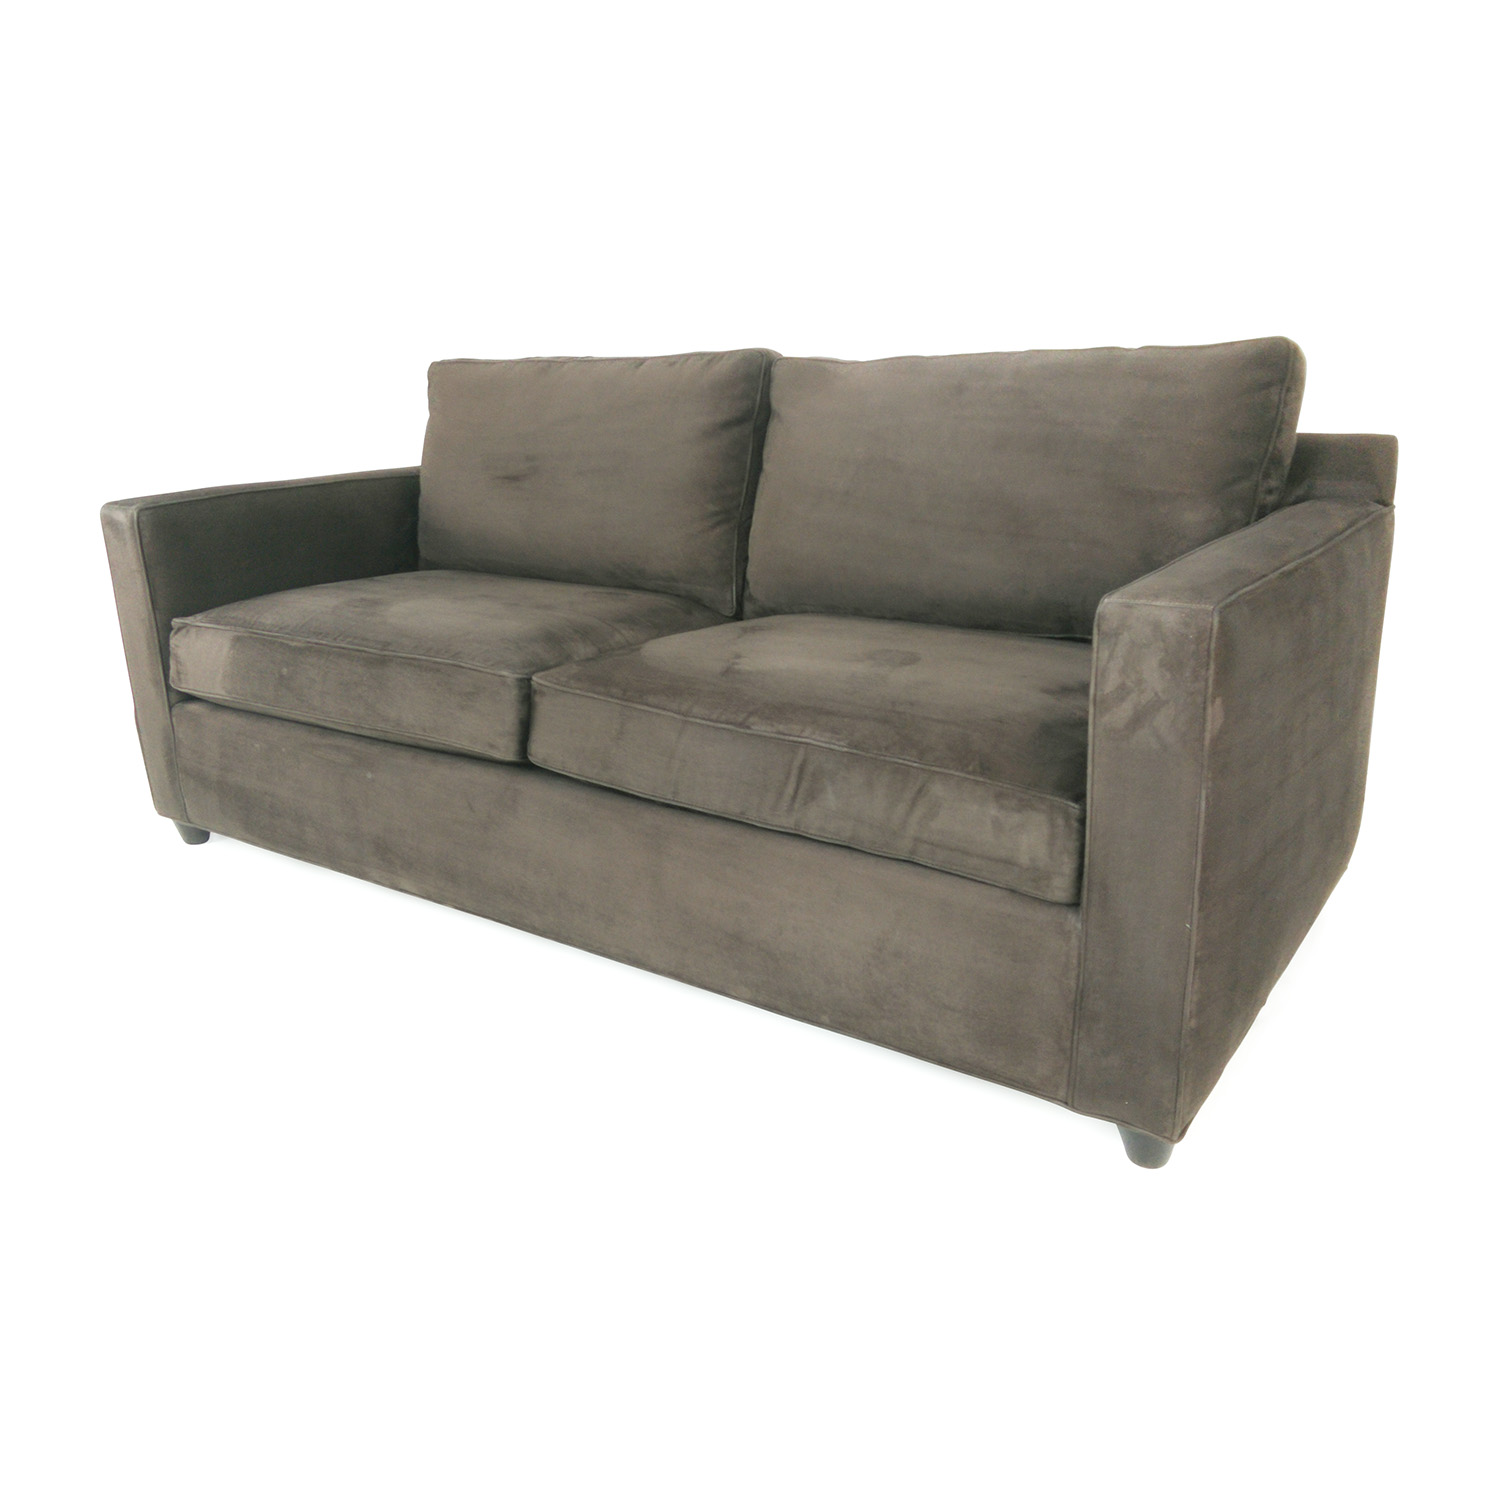 crate and barrel lounge sleeper sofa valencia leather review davis 44 off grey sofas thesofa